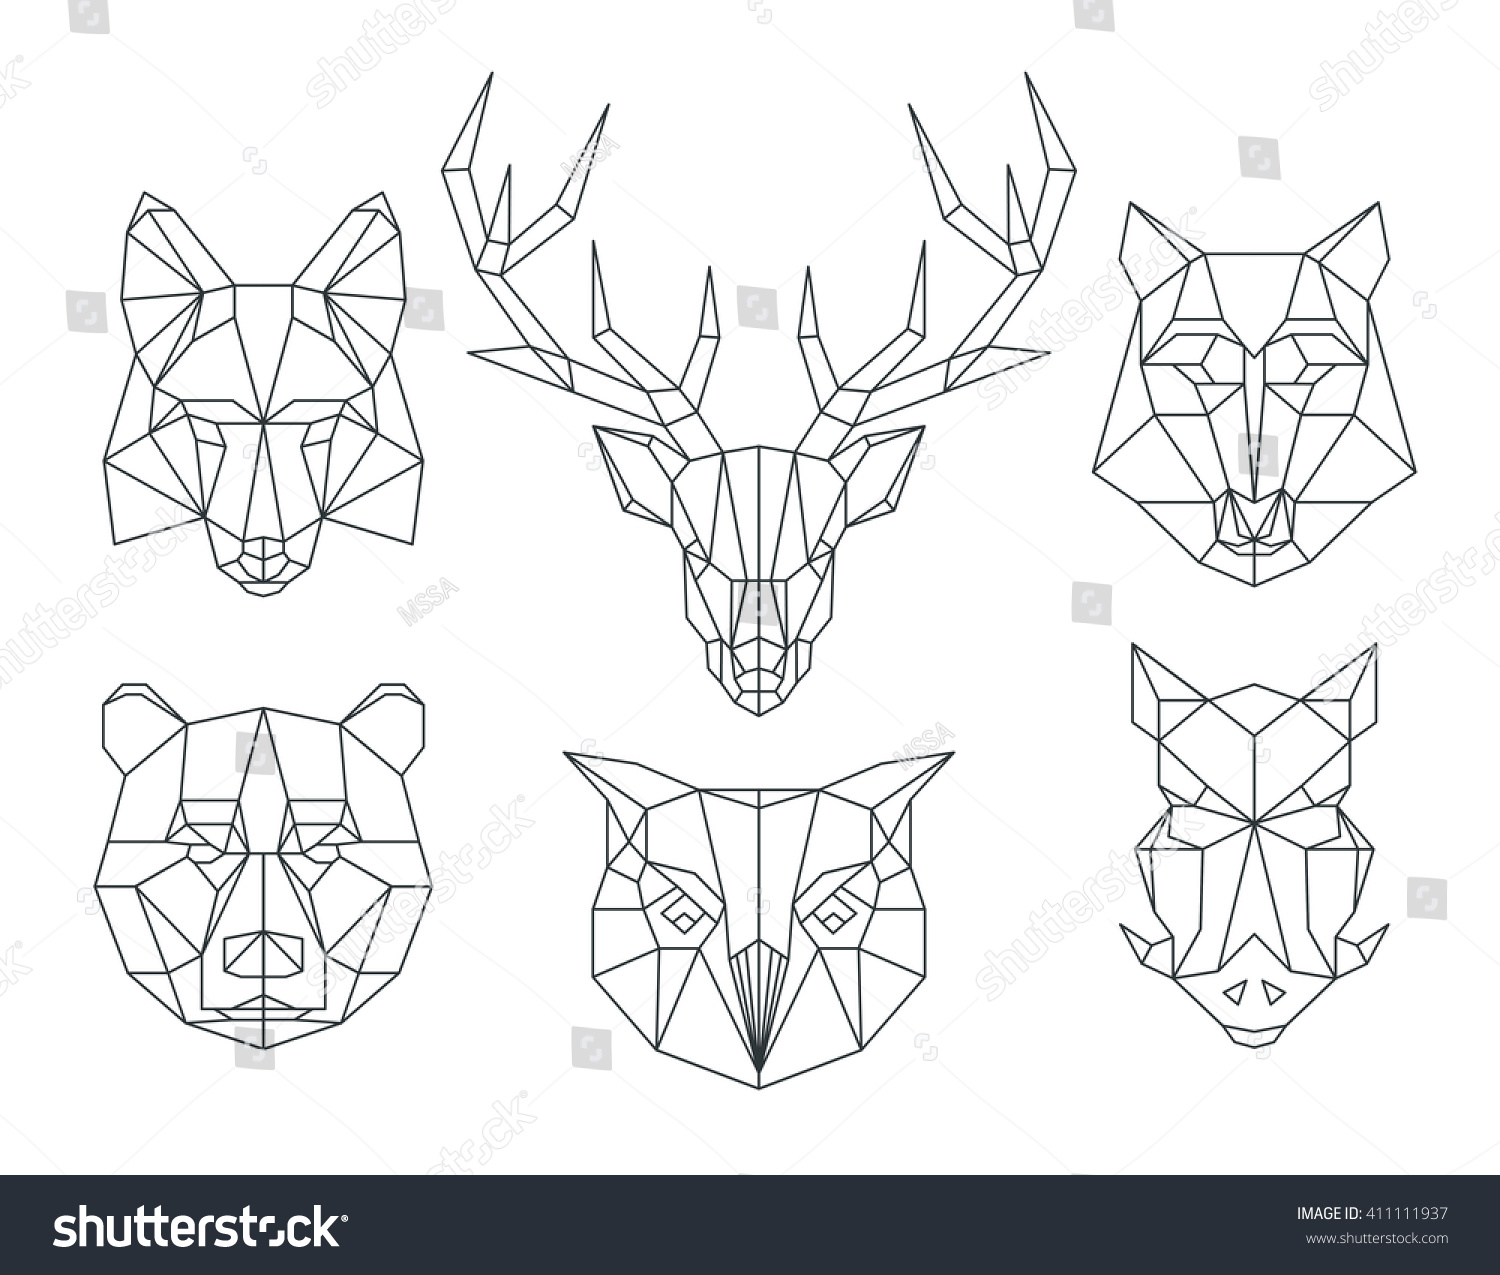 Low Poly Animals Heads Triangular Thin Stock Vector ... - photo#32